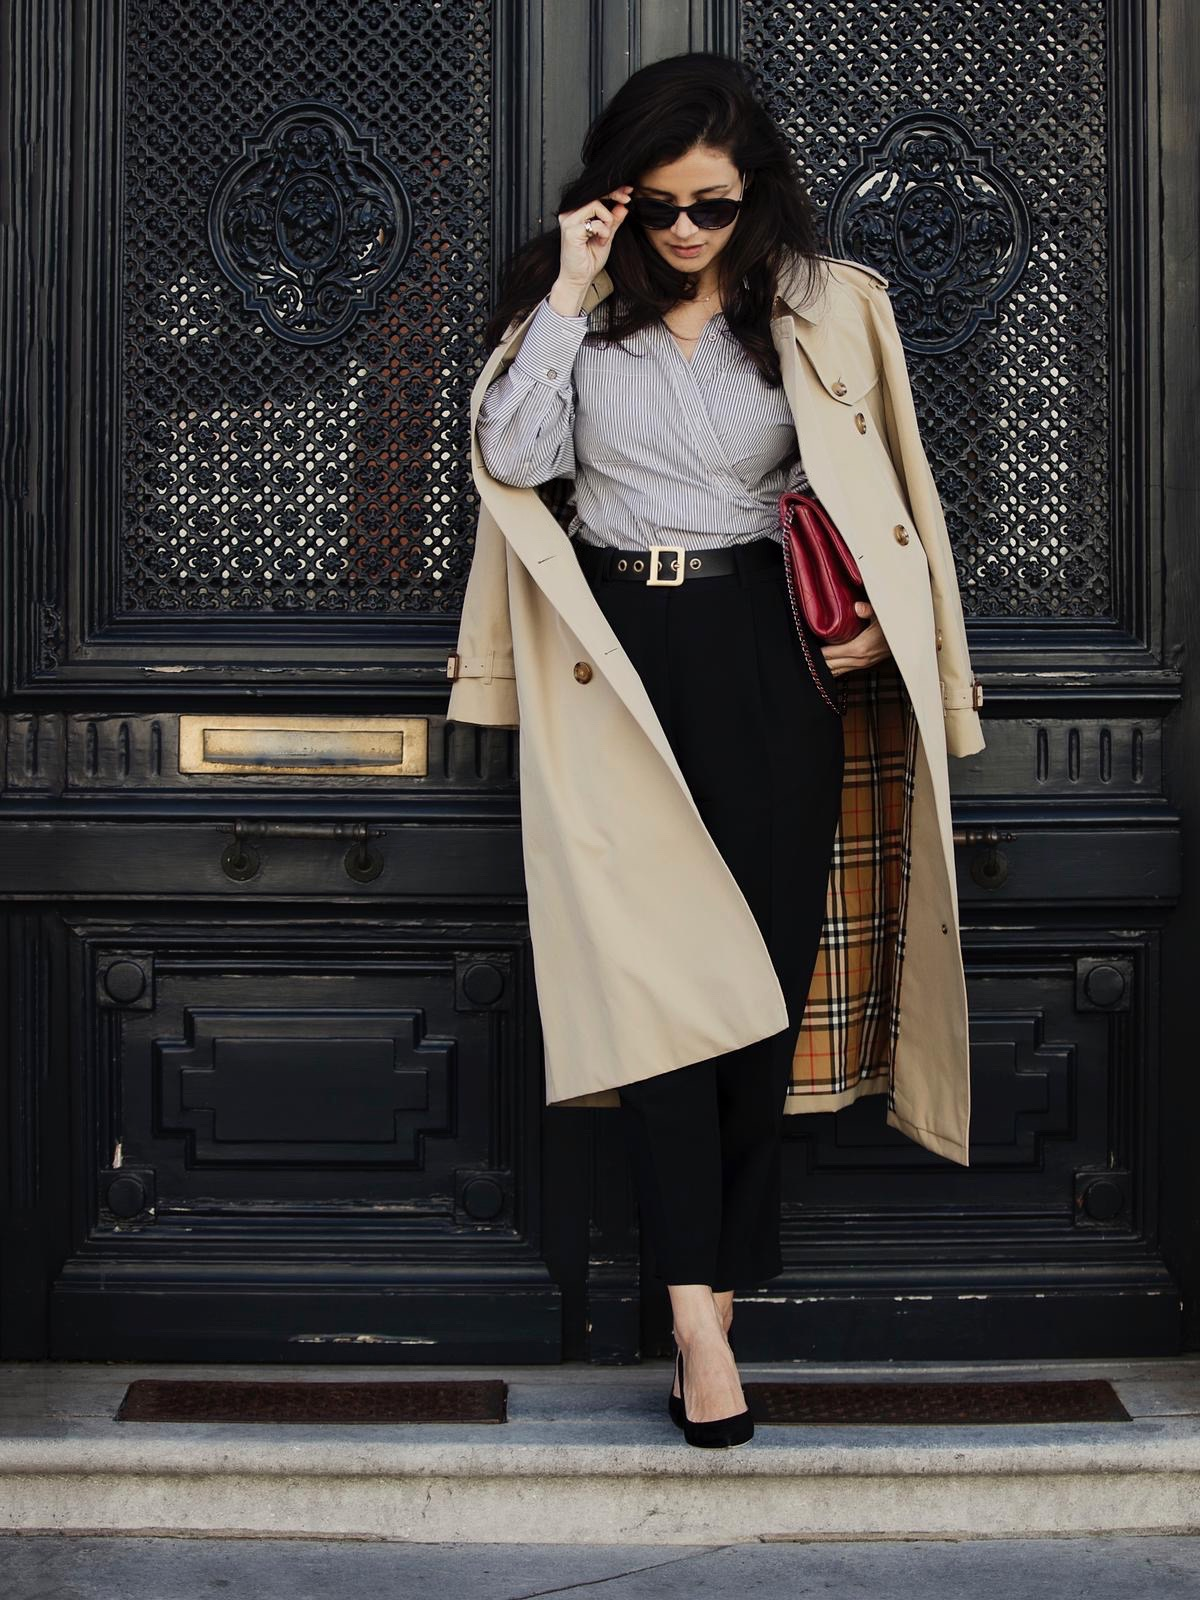 Styling Stories streetstyle look spring 2020 wearing Burberry trenchcoat Iri shirt Dior D belt Finds boutique Den Bosch pants Sergio Rossi pumps Chanel classic clutch red